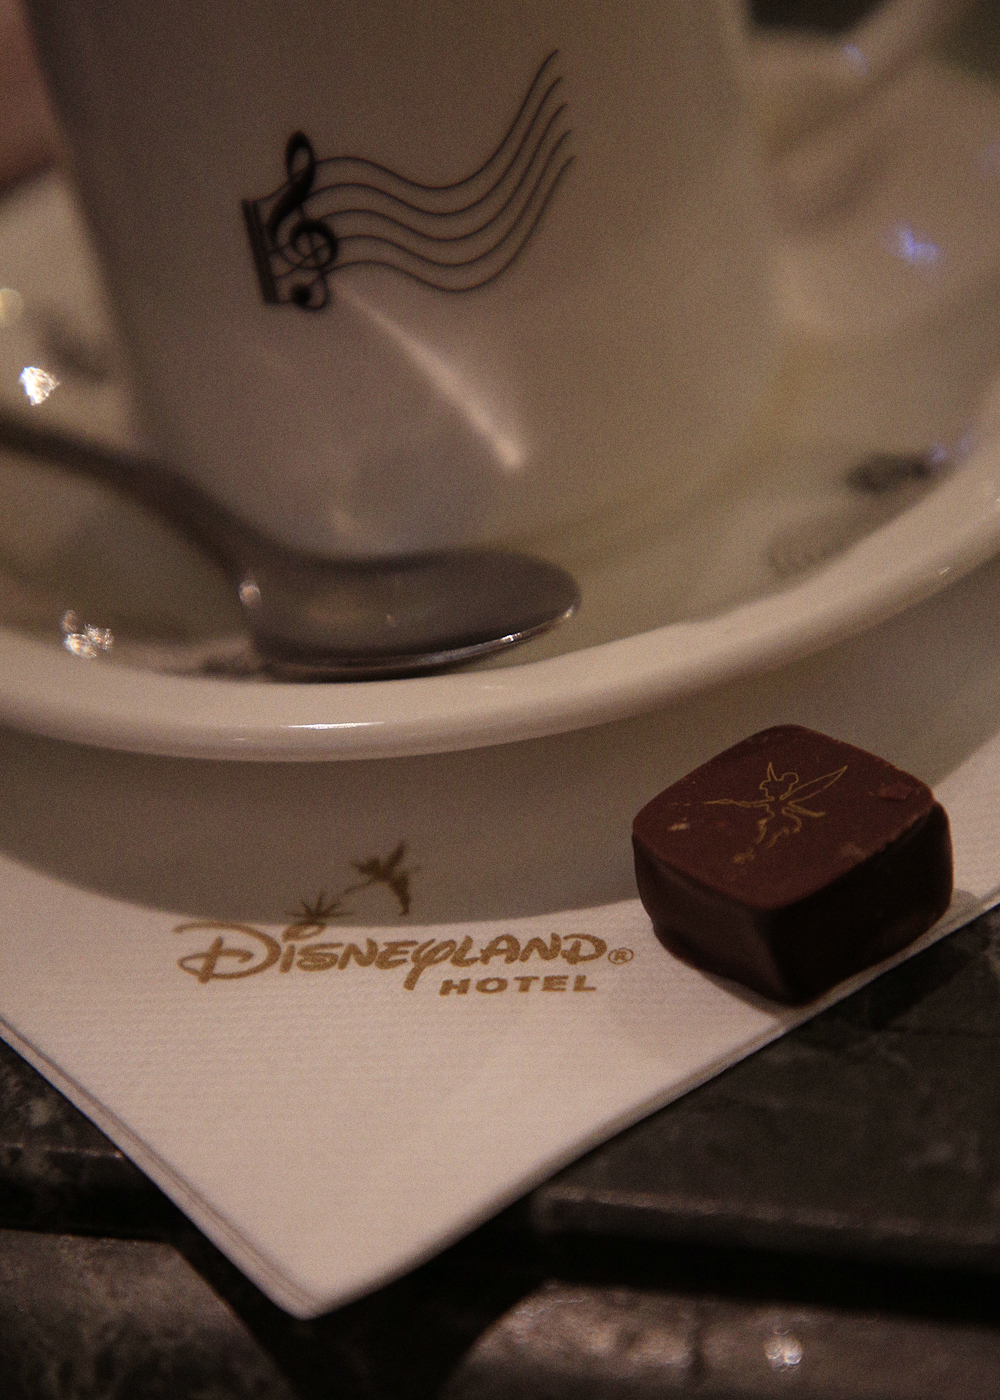 [Trip Report DLP] ÉPISODE BONUS : A Whole New World au Disneyland Hotel Fantasia_4-1